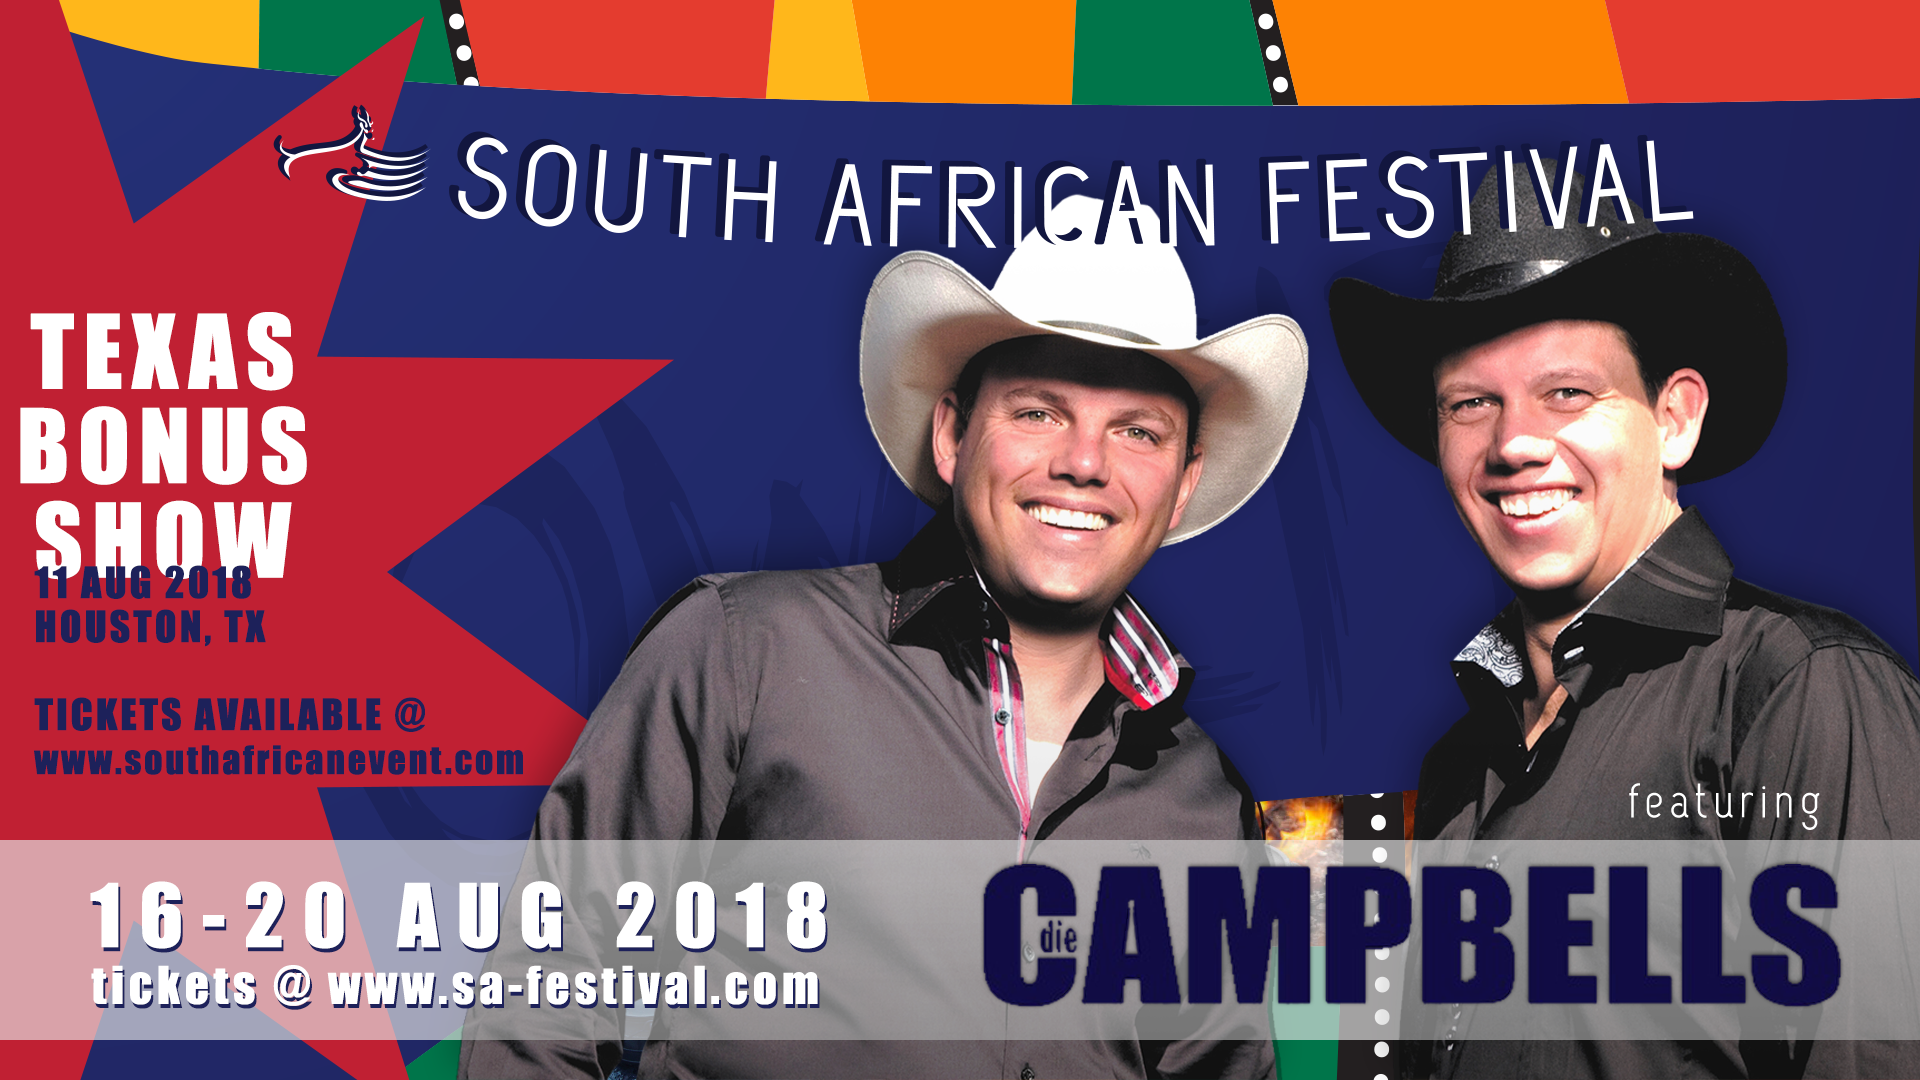 South African Festival 2018